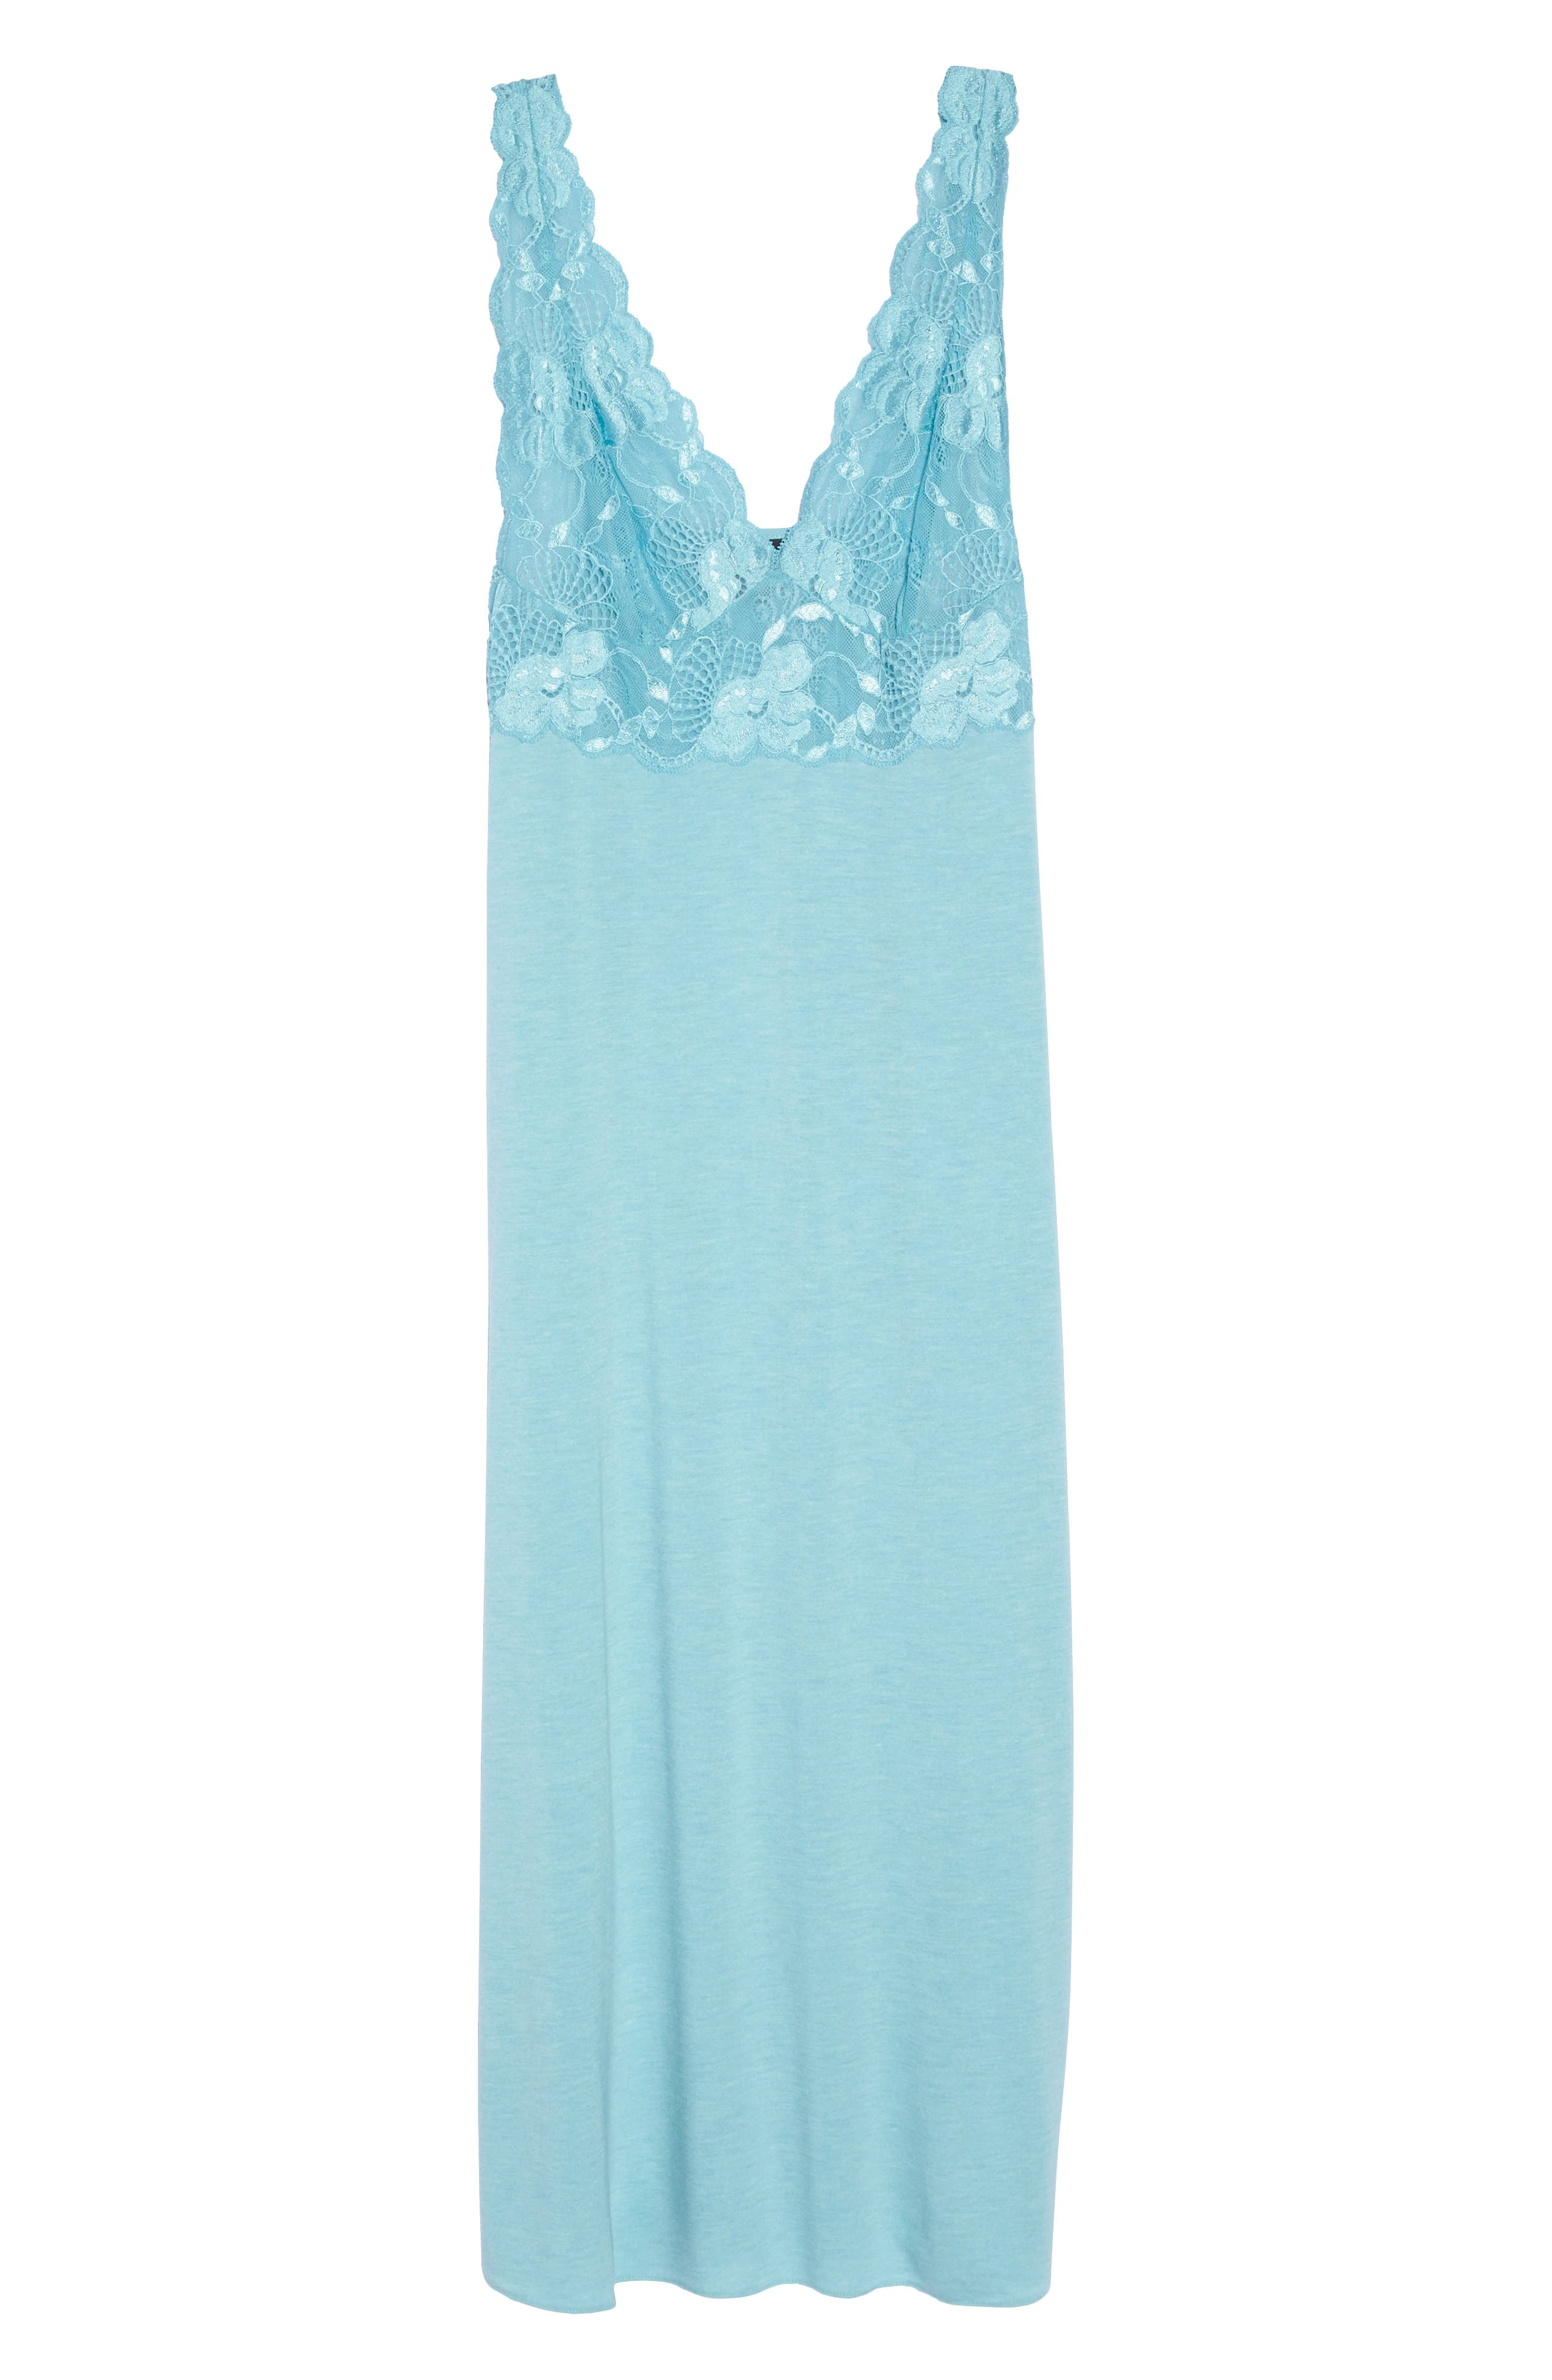 'Zen Floral' Nightgown,                             Main thumbnail 1, color,                             Turquoise